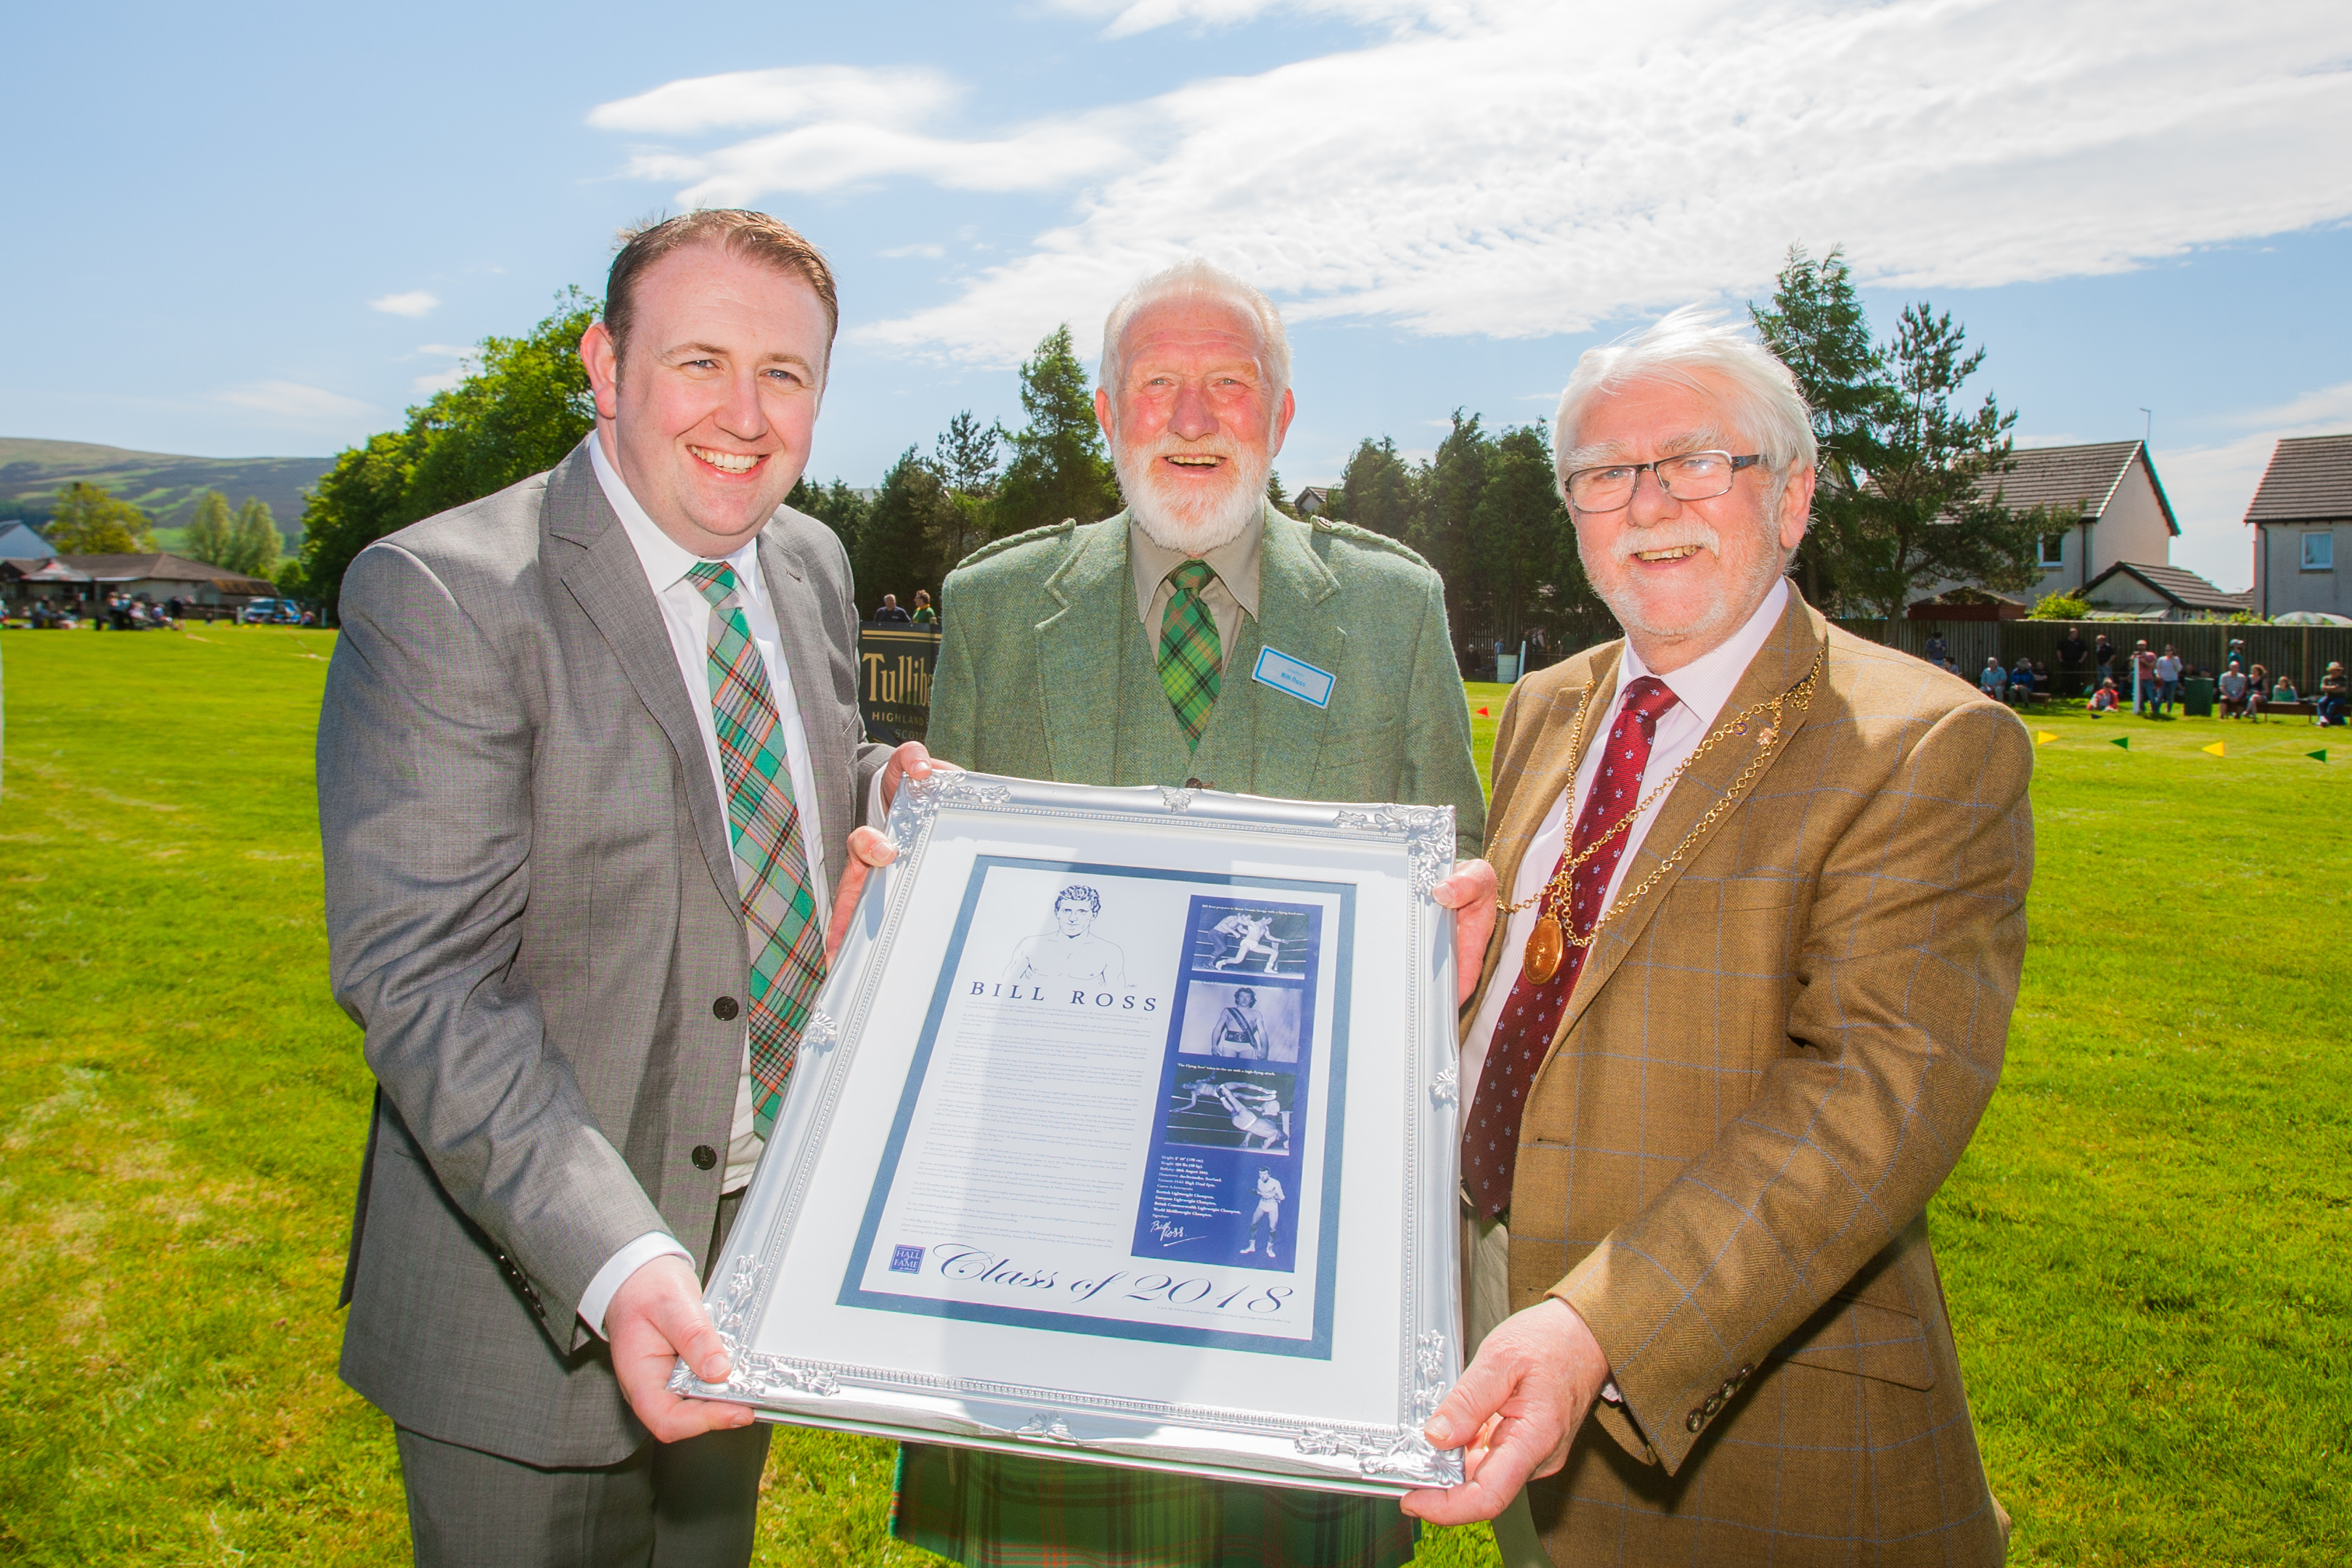 Auchterarder wrestler Bill Ross was inducted into the Professional Wrestling Hall of Fame. From left:, Hall of Fame founder Bradley Craig, Bill Ross and Provost Dennis Melloy.